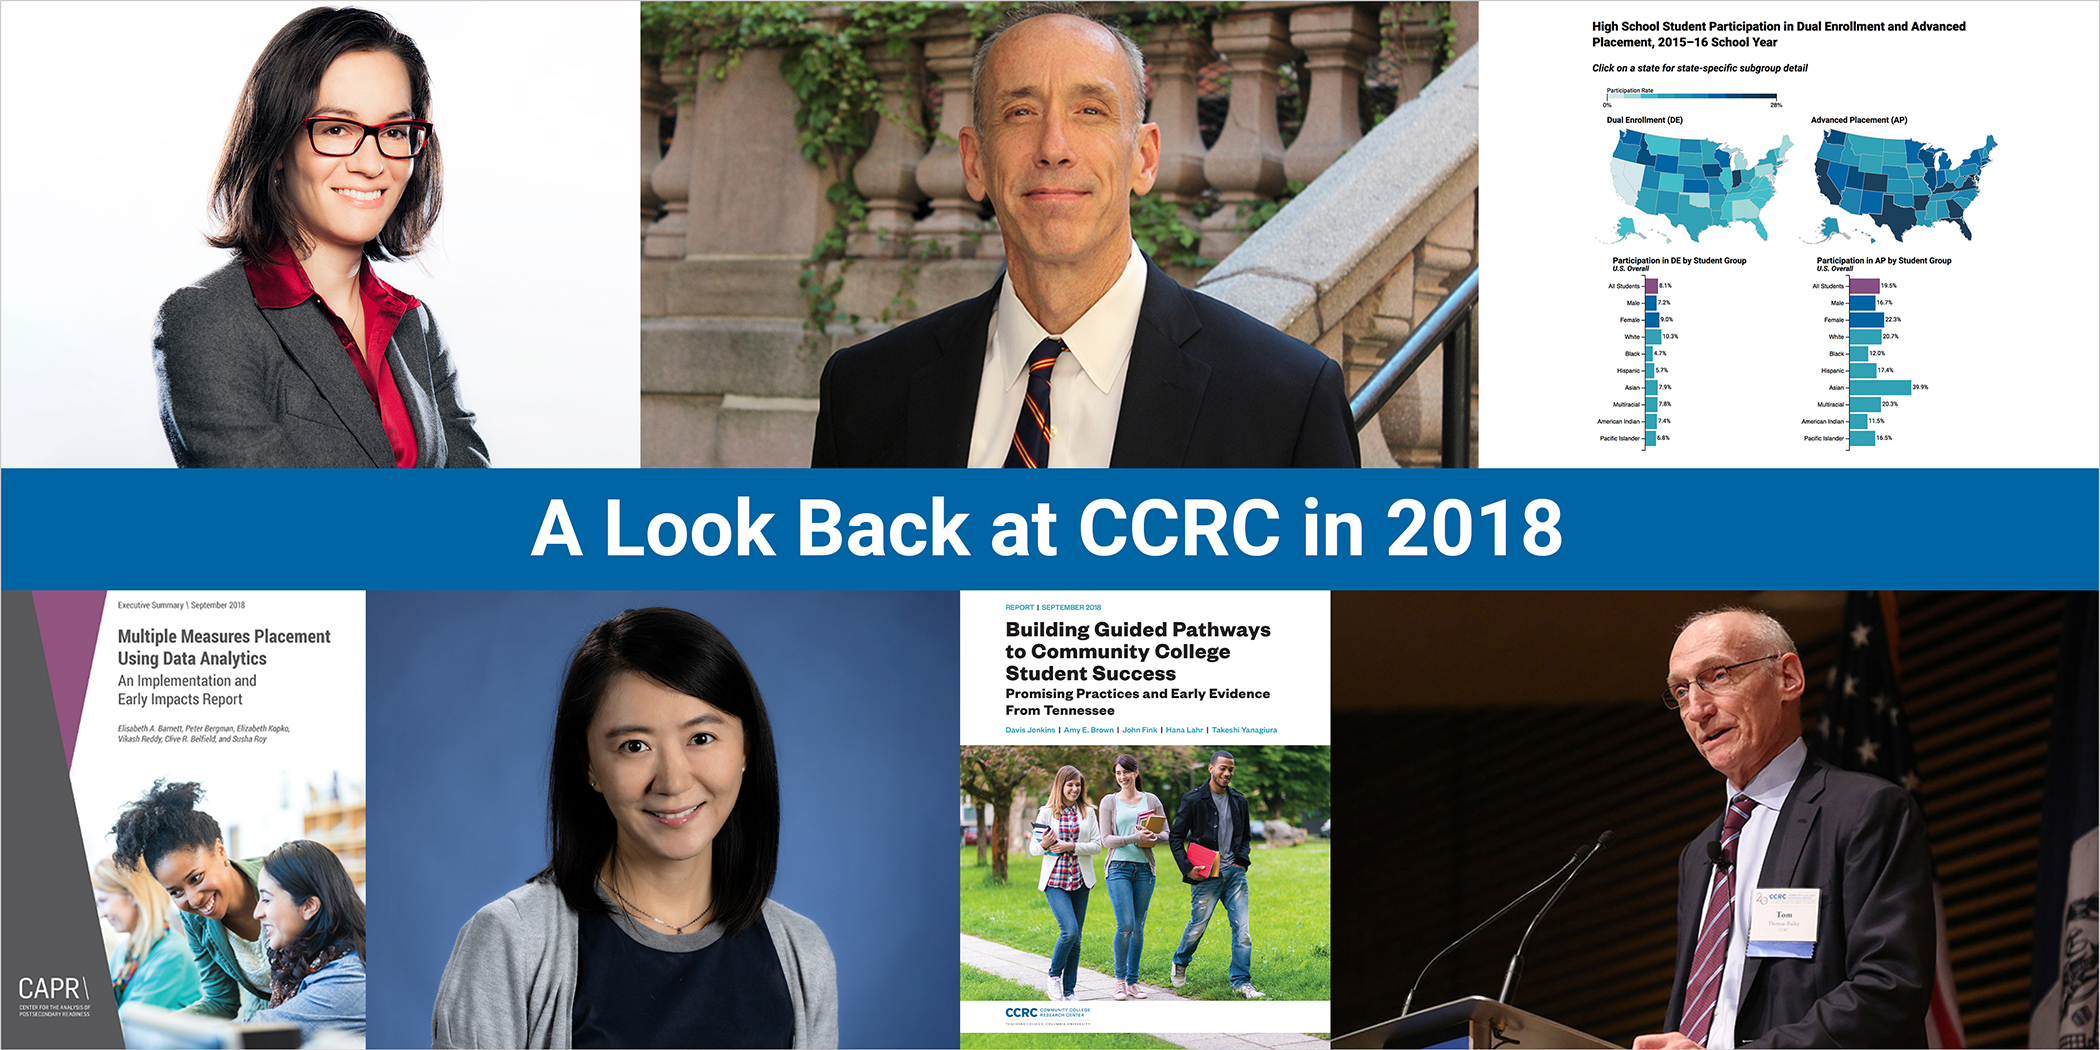 ccrc 2018 review